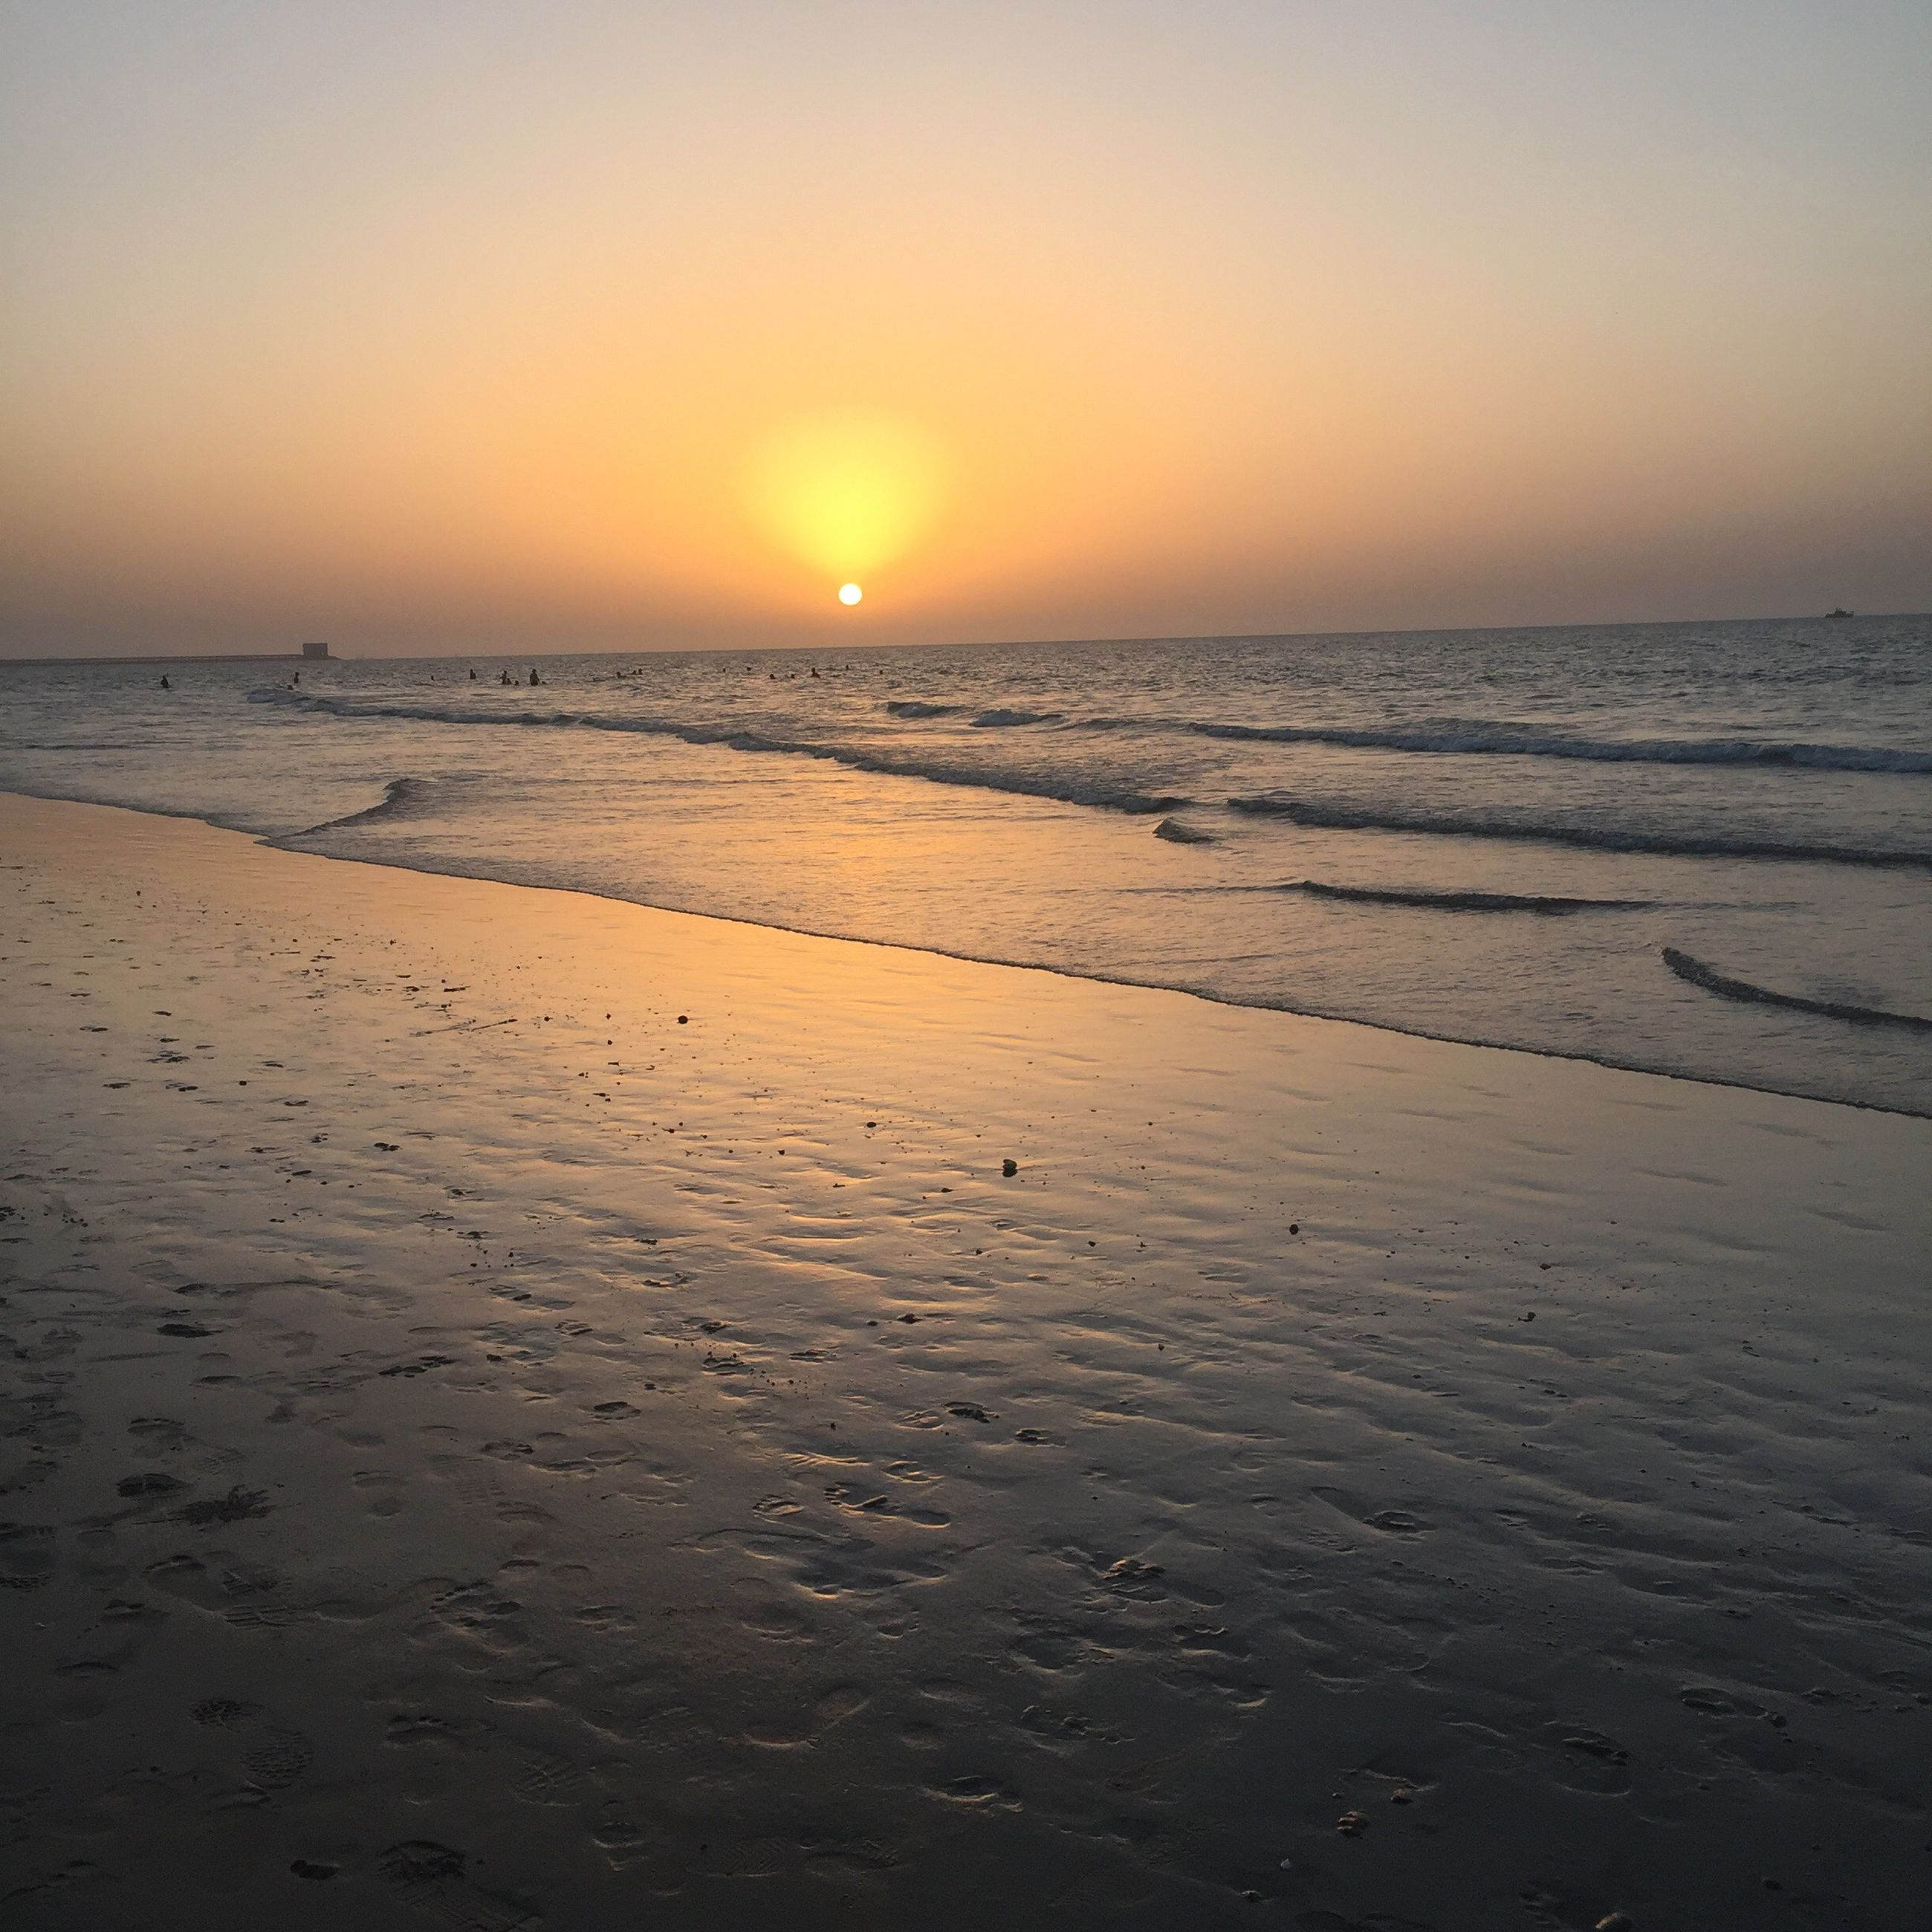 sunset, sun, sea, beach, scenics, water, tourism, tranquil scene, travel destinations, vacations, beauty in nature, majestic, atmosphere, horizon over water, tranquility, travel, idyllic, awe, vibrant color, wave, seascape, sand, non-urban scene, back lit, nature, atmospheric mood, shore, tide, environment, moody sky, coastline, glowing, dramatic sky, distant, sky